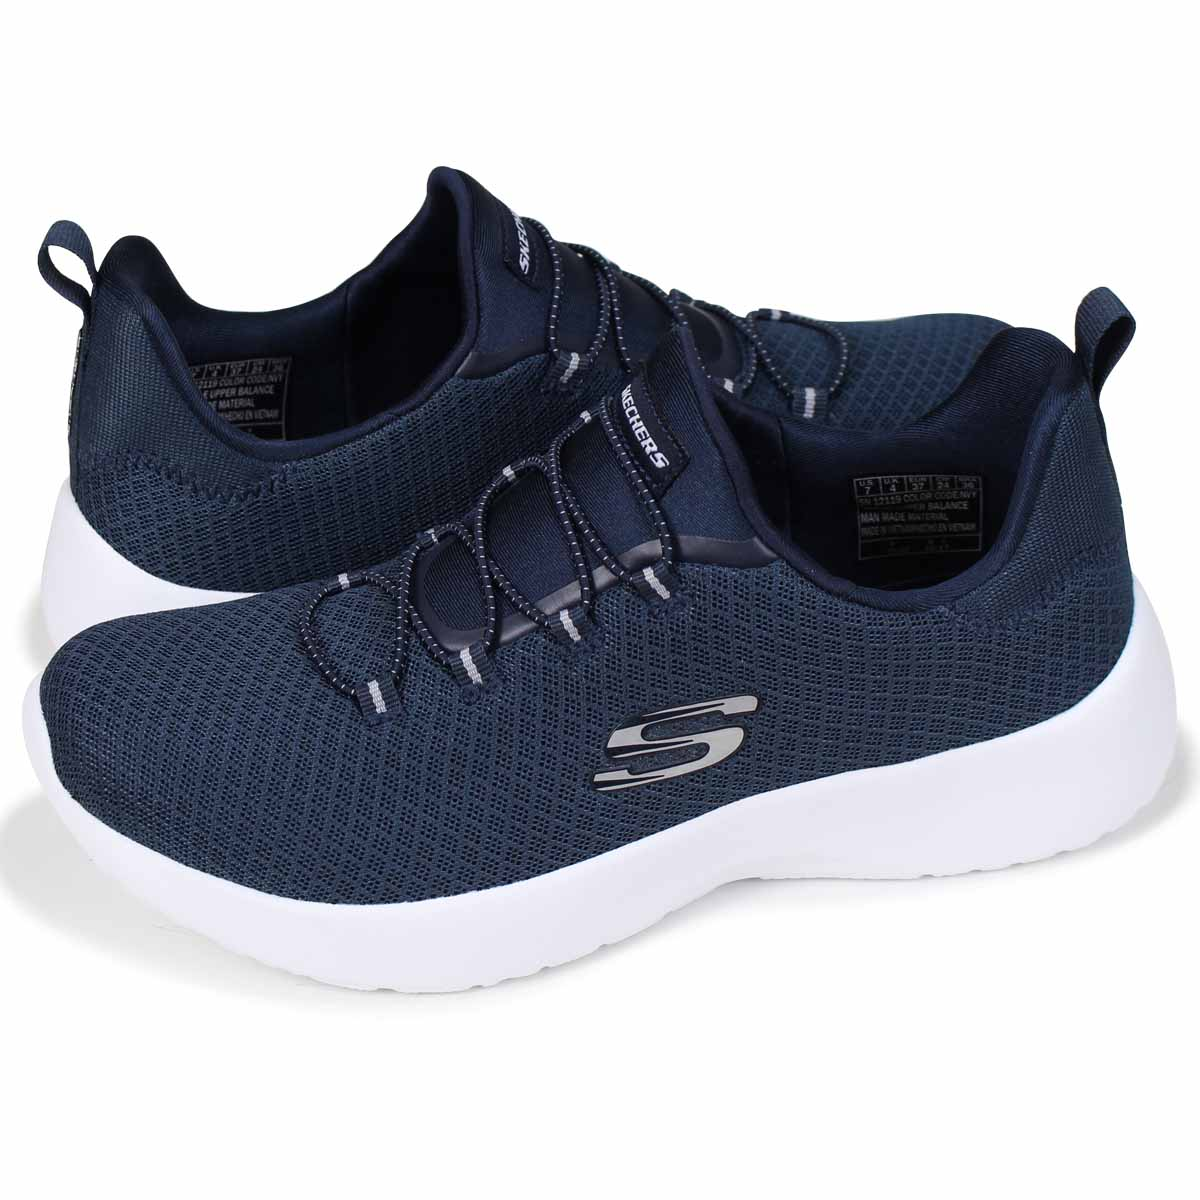 SKECHERS DYNAMIGHT スケッチャーズダイナマイトレディーススニーカー 12119 navy [load planned Shinnyu  load in reservation product 6/15 containing]